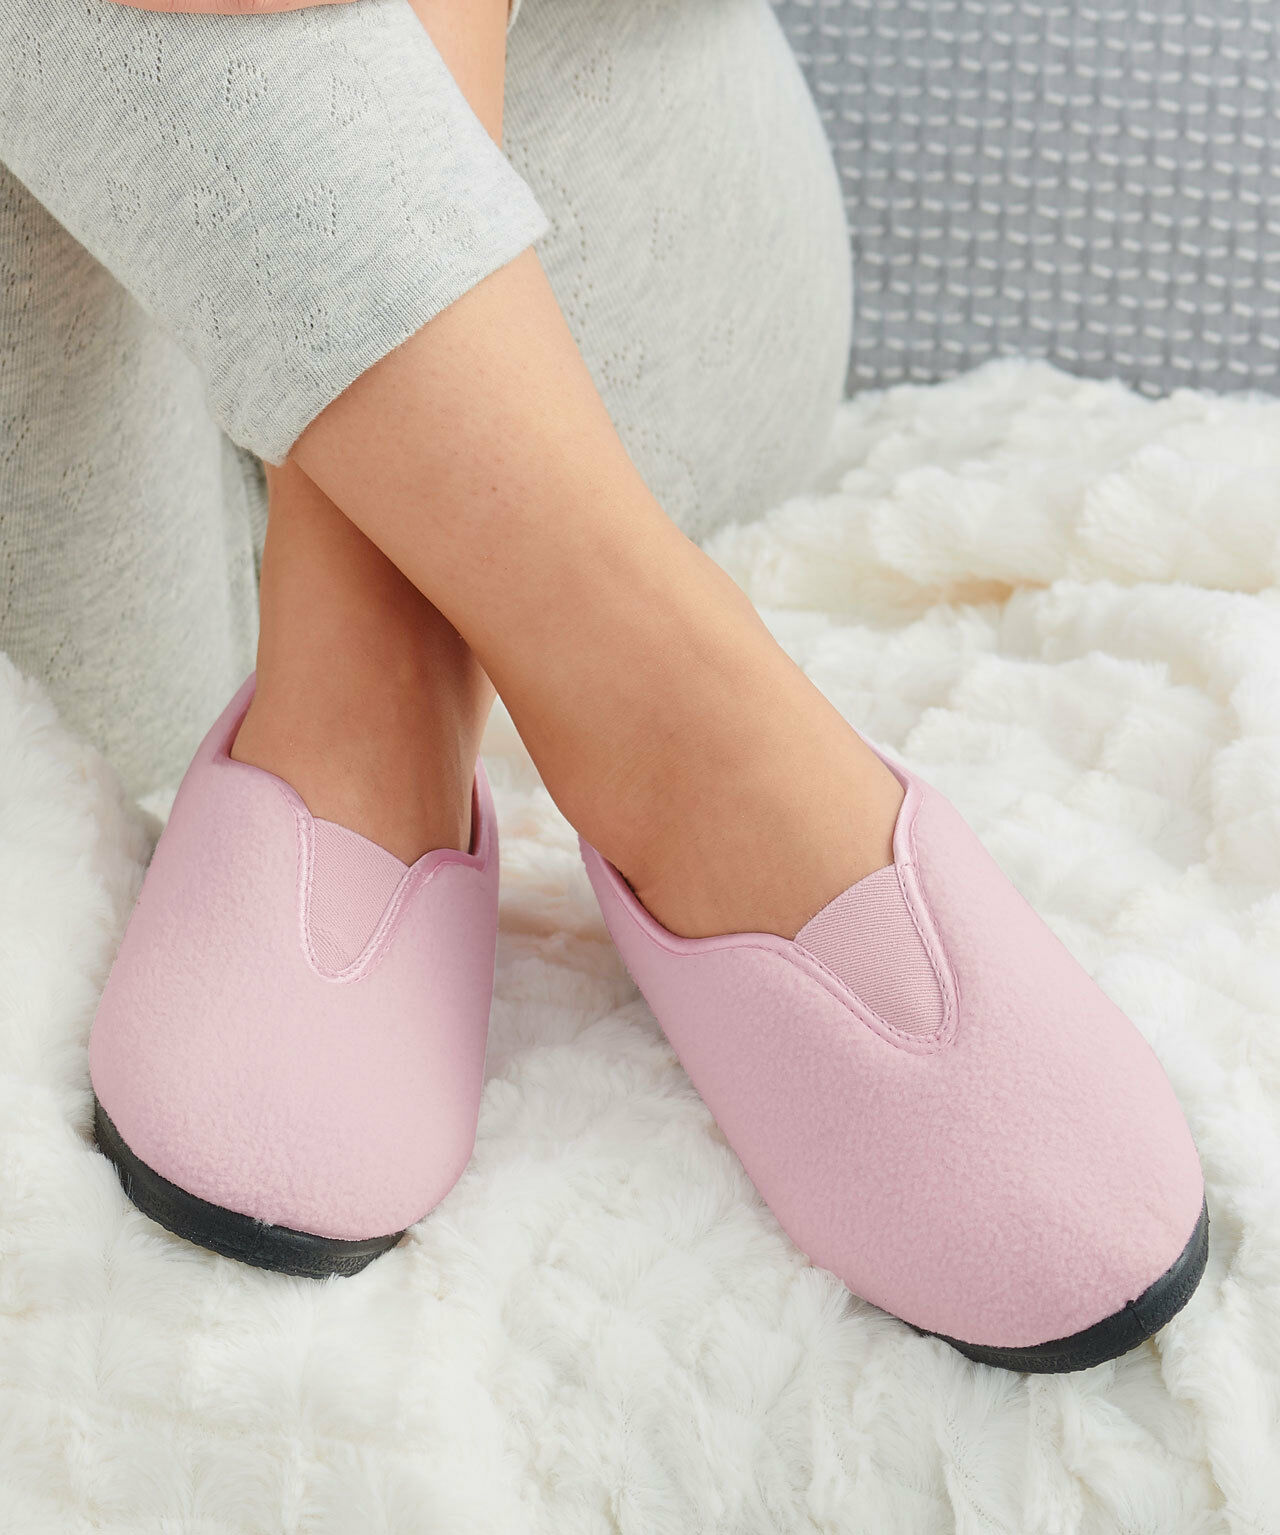 Pink Thermolactyl Ballerina Slippers Size 7 Damart/Thermal<wbr/>/Rose/Textile/<wbr/>Shoe/NEW